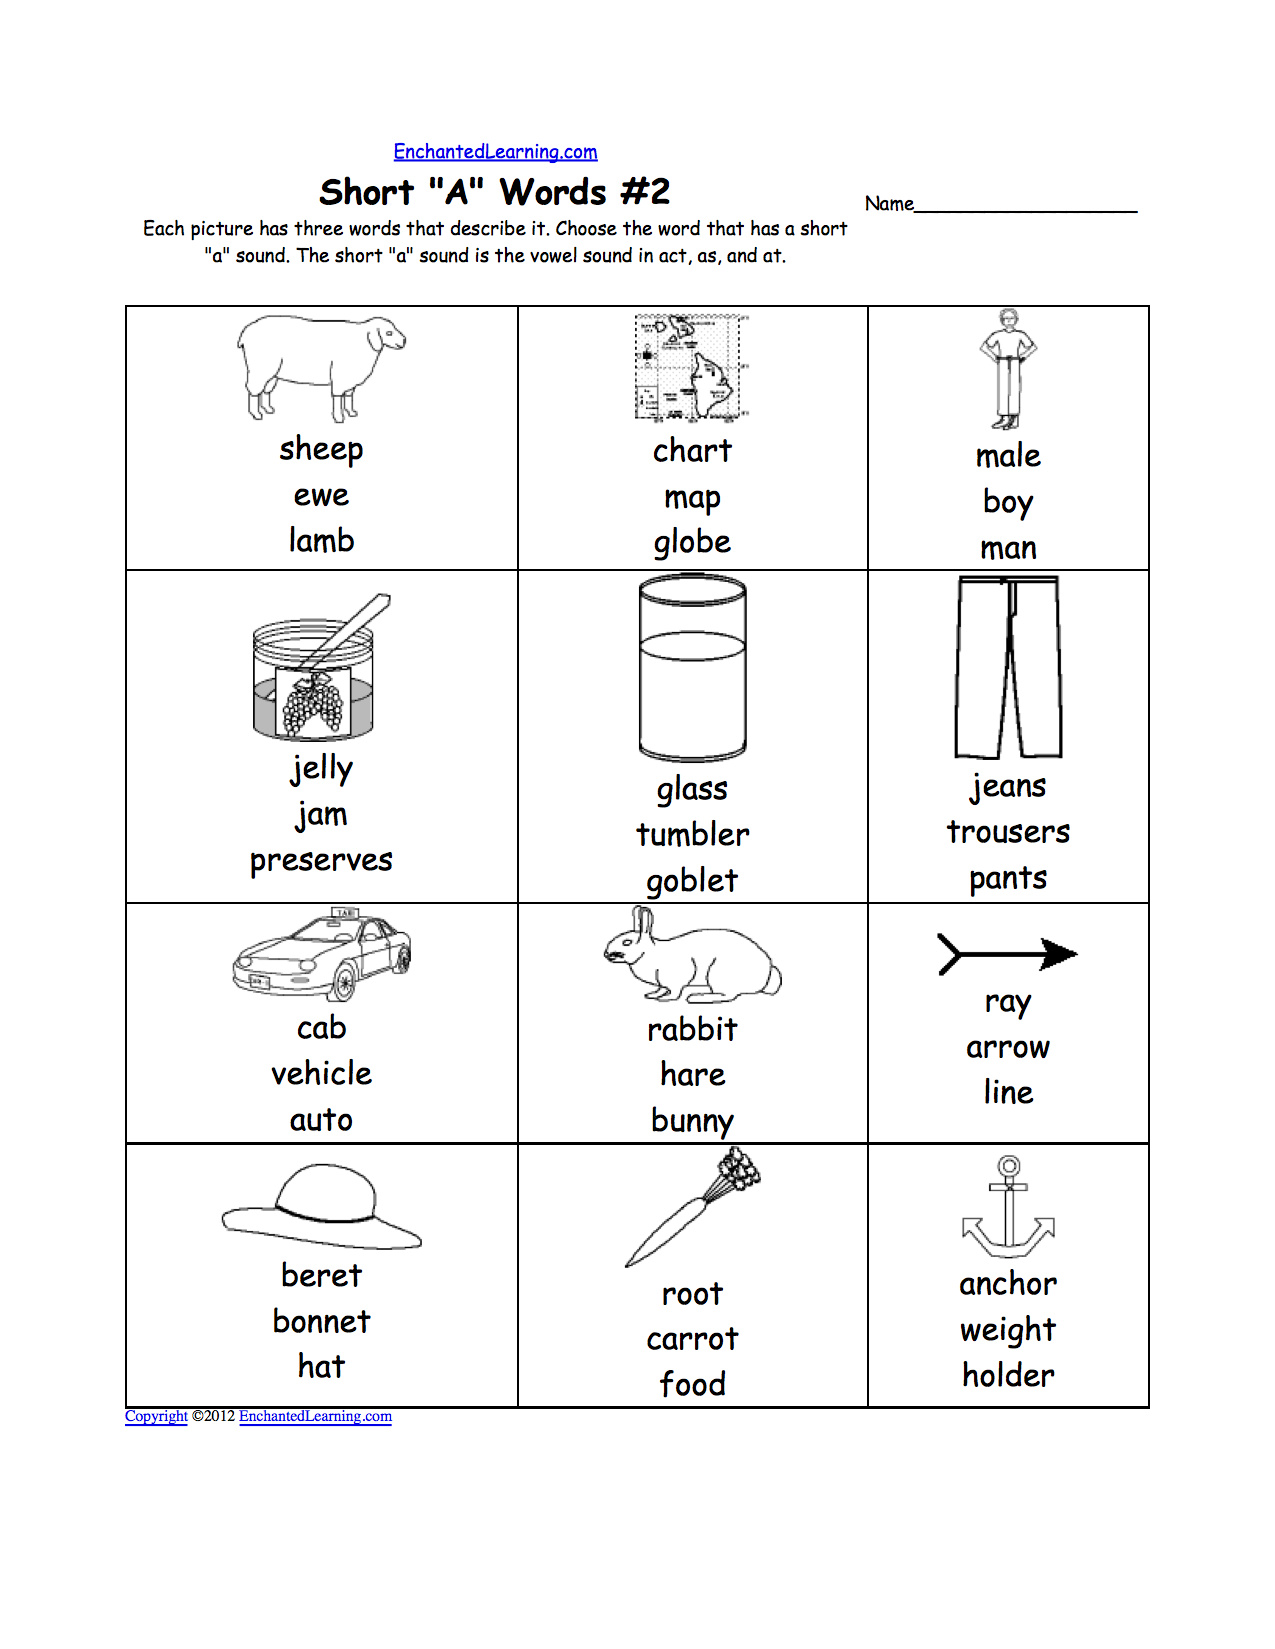 worksheet Short Vowel Sound Worksheets phonics worksheets multiple choice to print enchantedlearning com